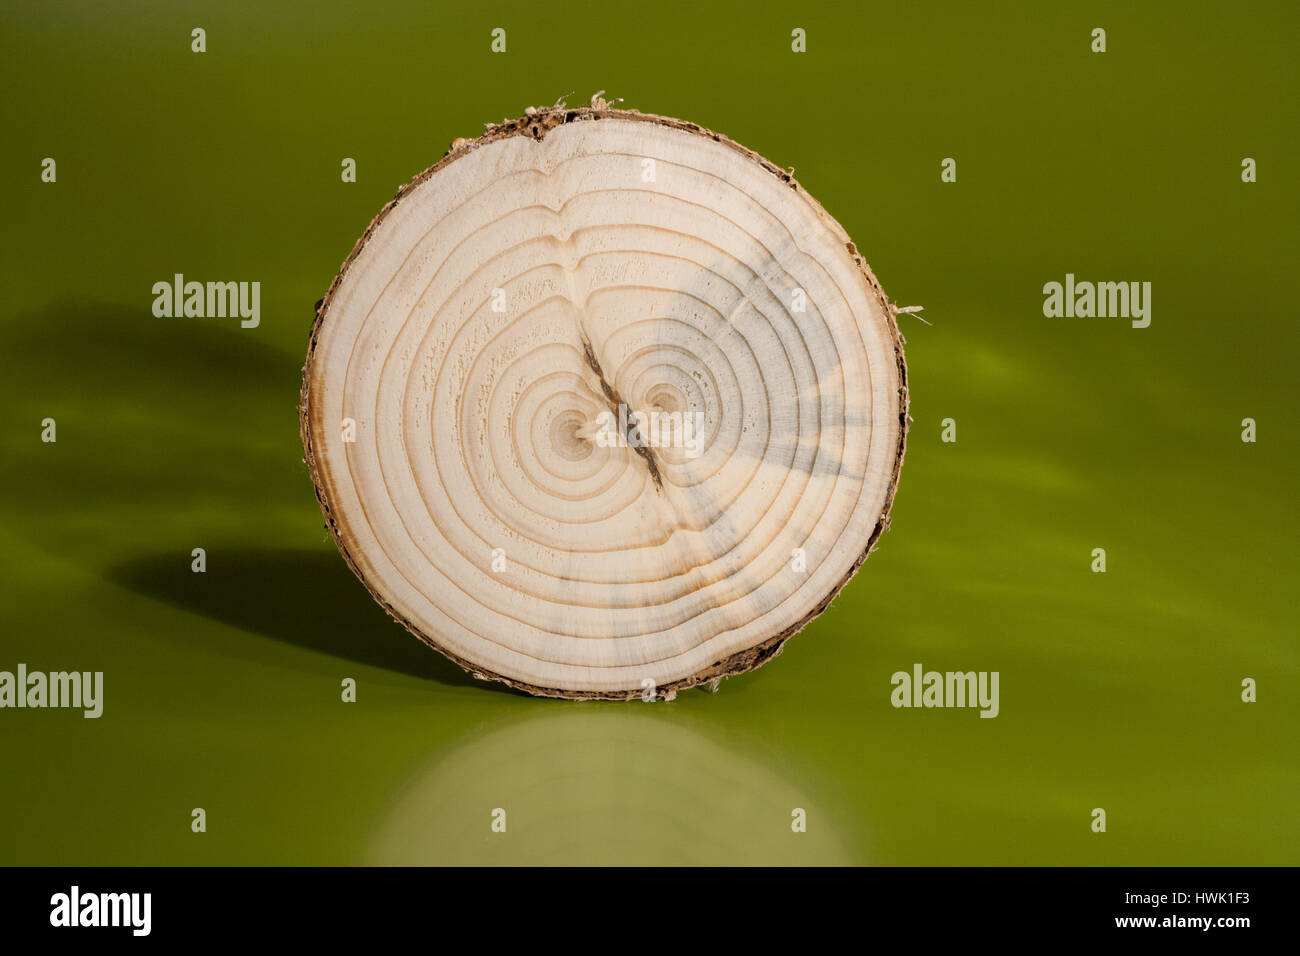 One pine saw cut on green background. Clearly visible two cores and annual rings. - Stock Image